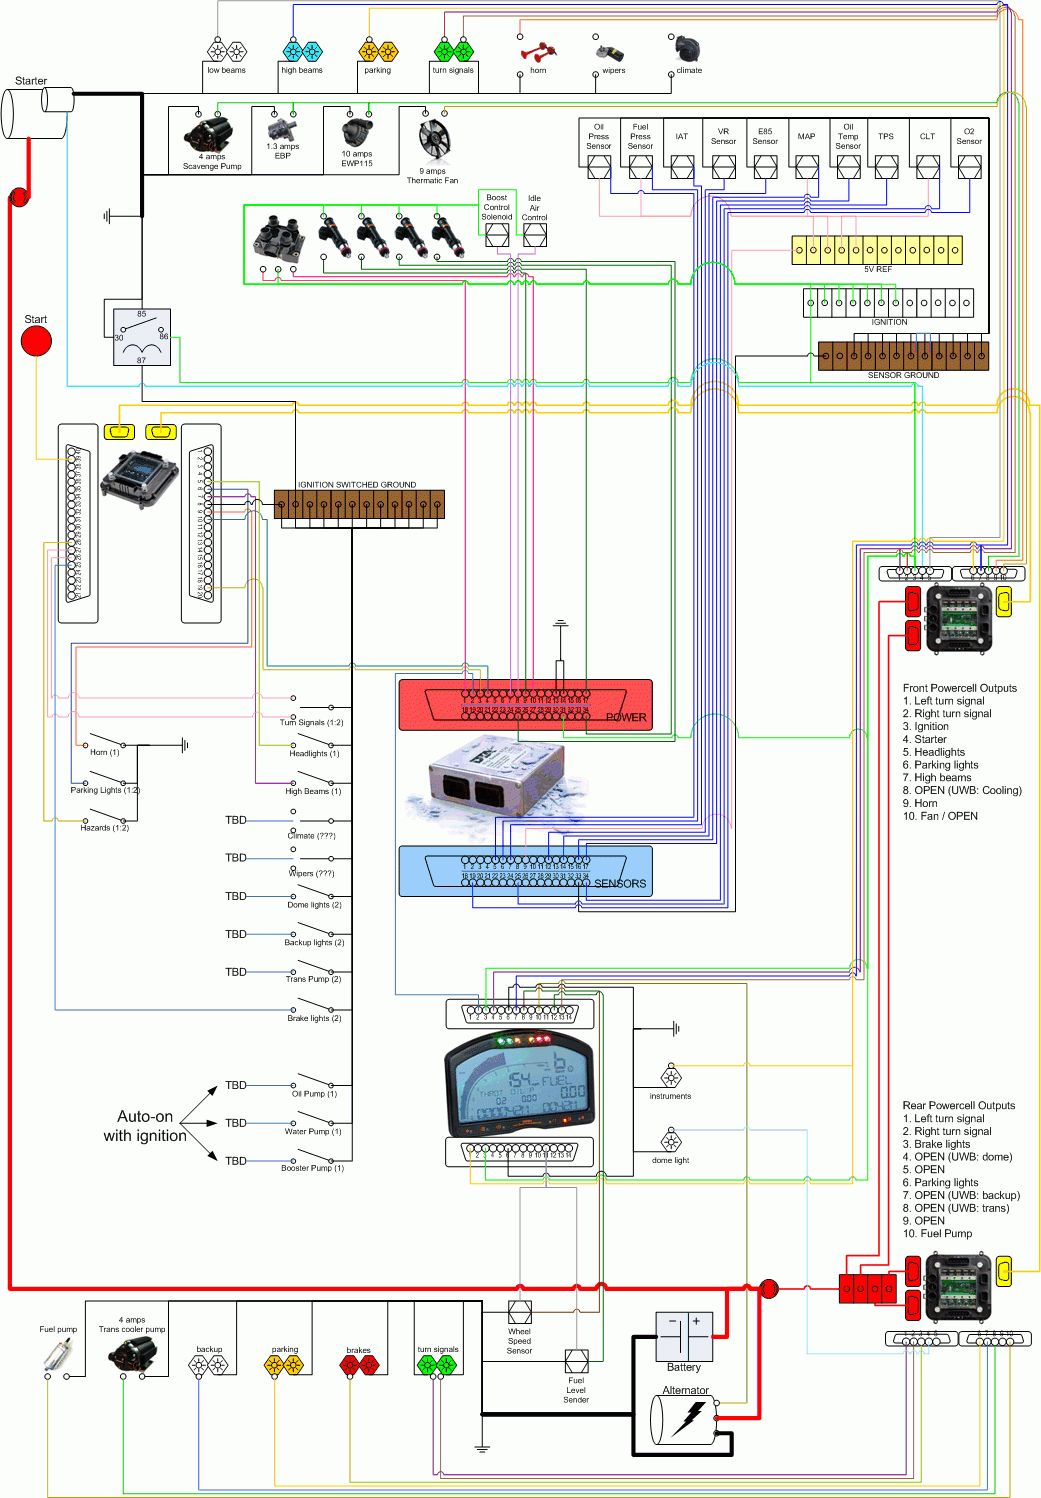 Wiring Diagram For Race Car - Wiring Diagram Img on